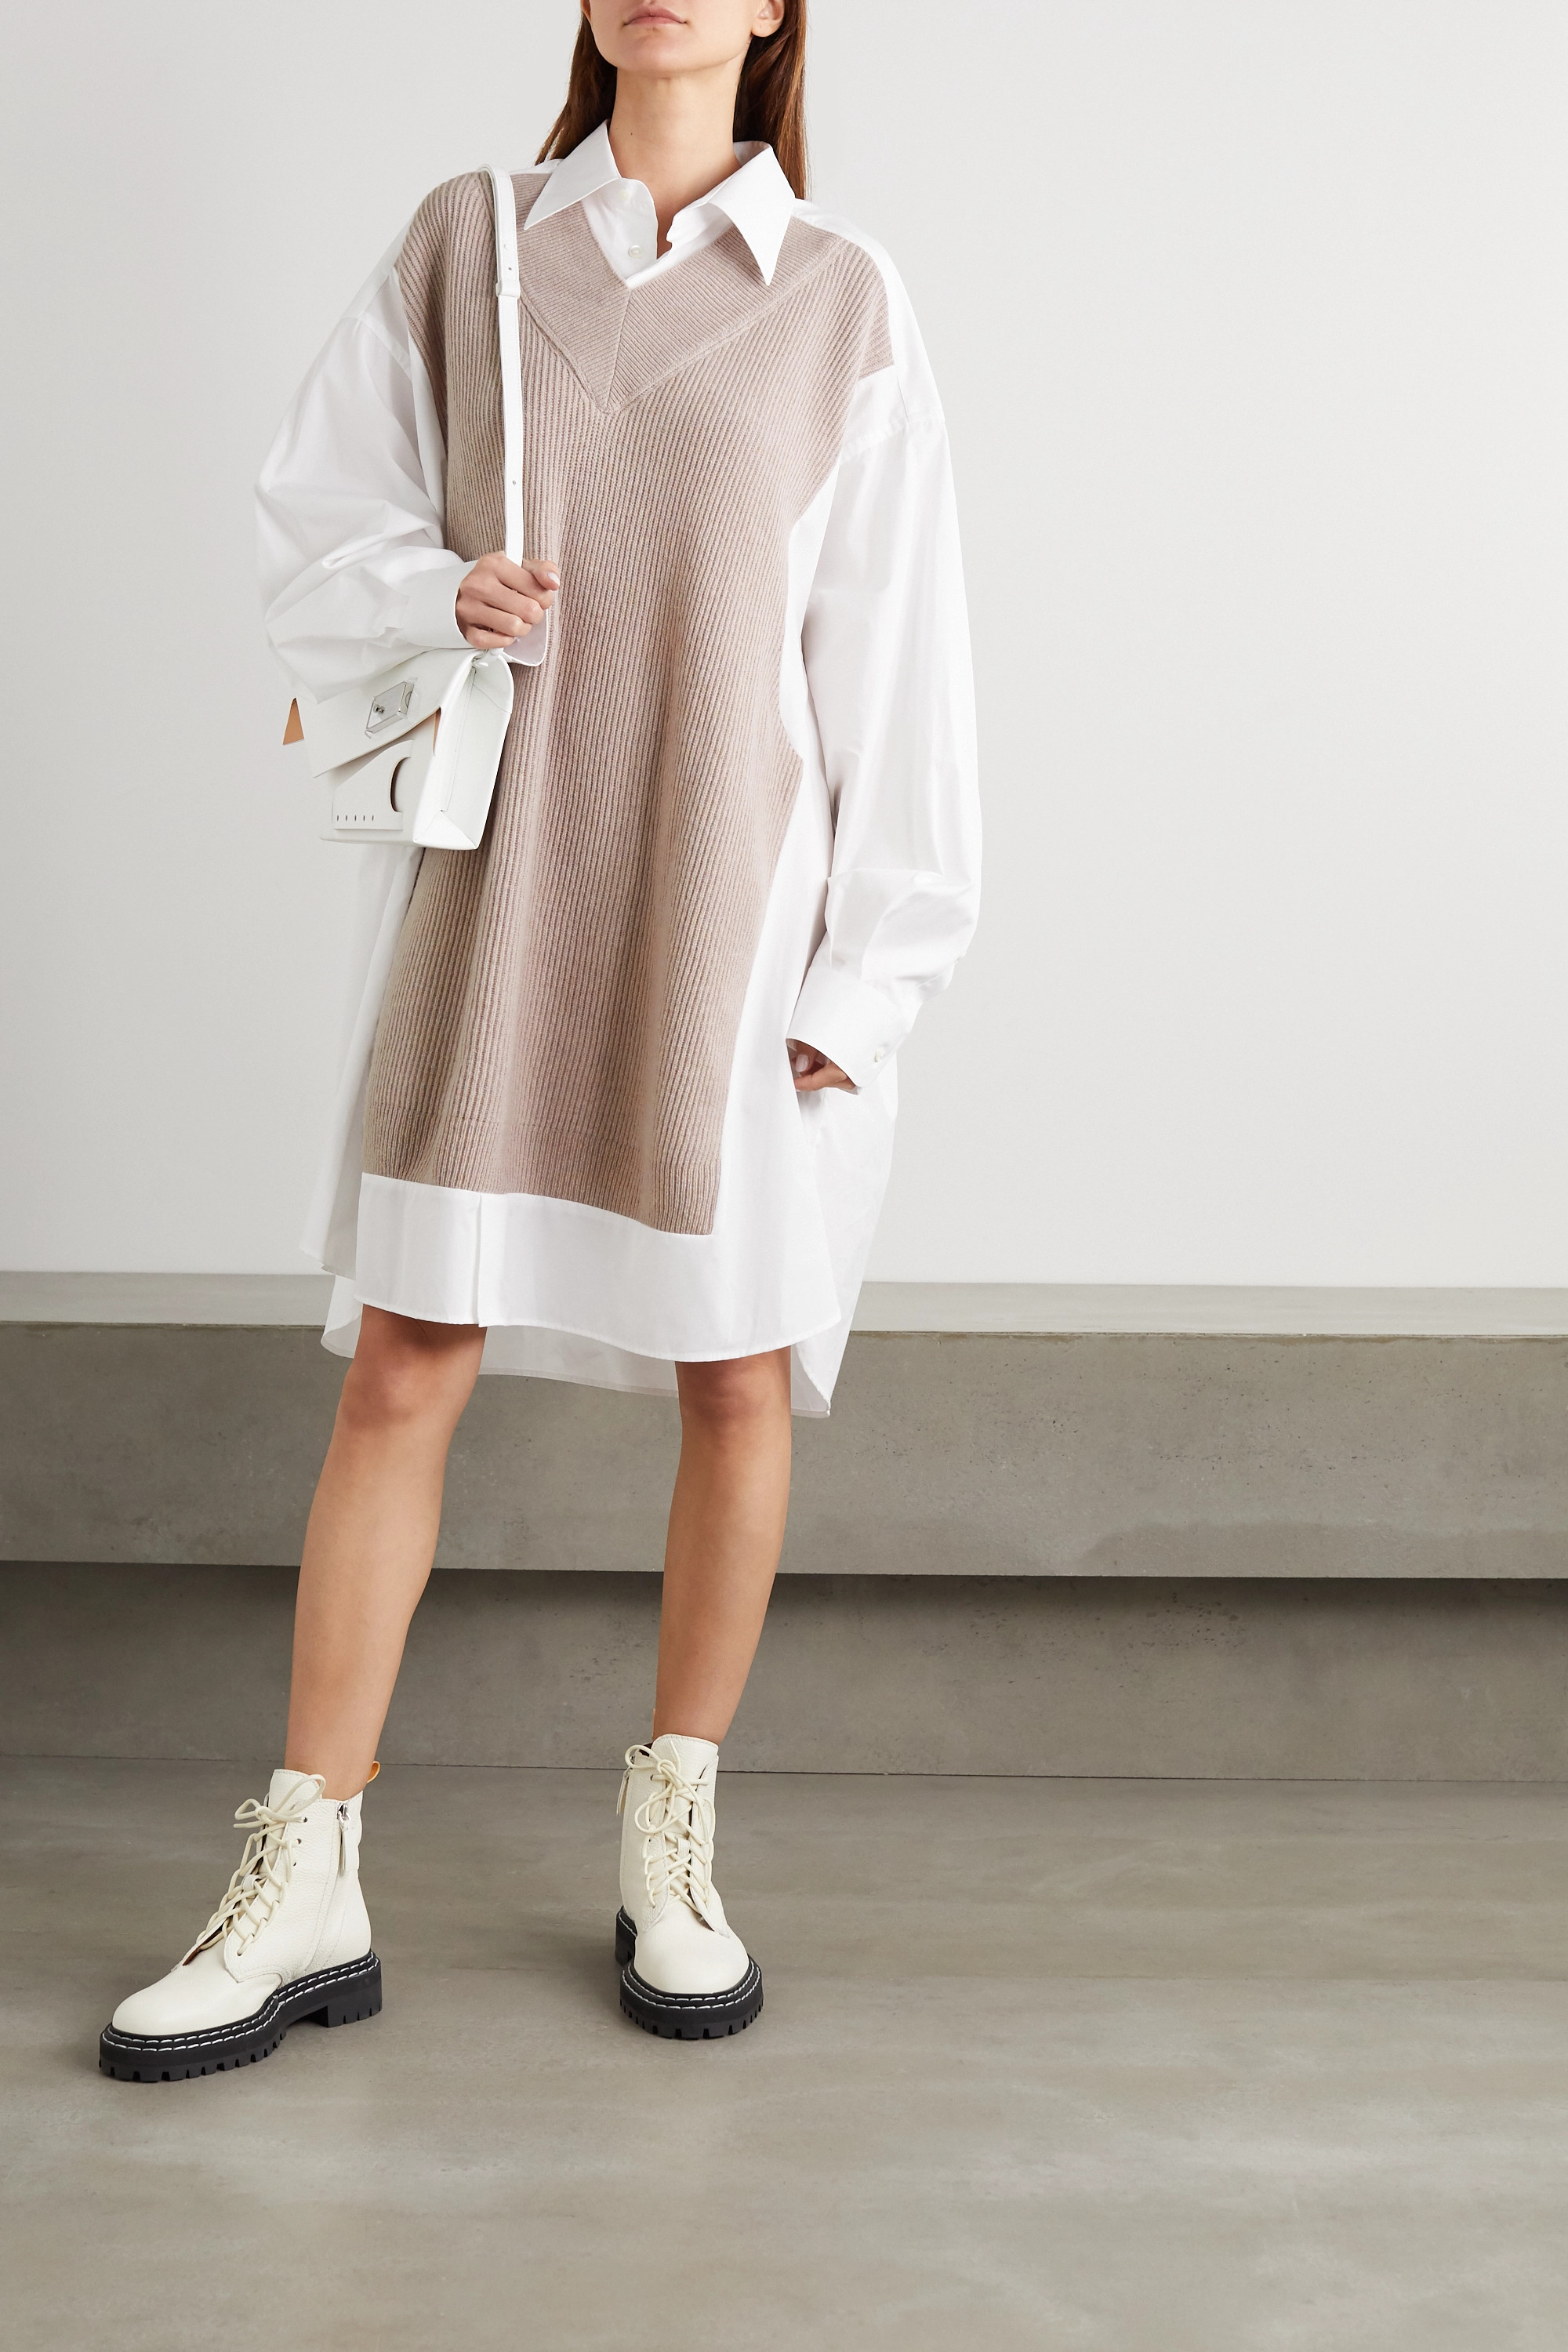 Maison Margiela Ribbed wool and cotton-poplin shirt dress